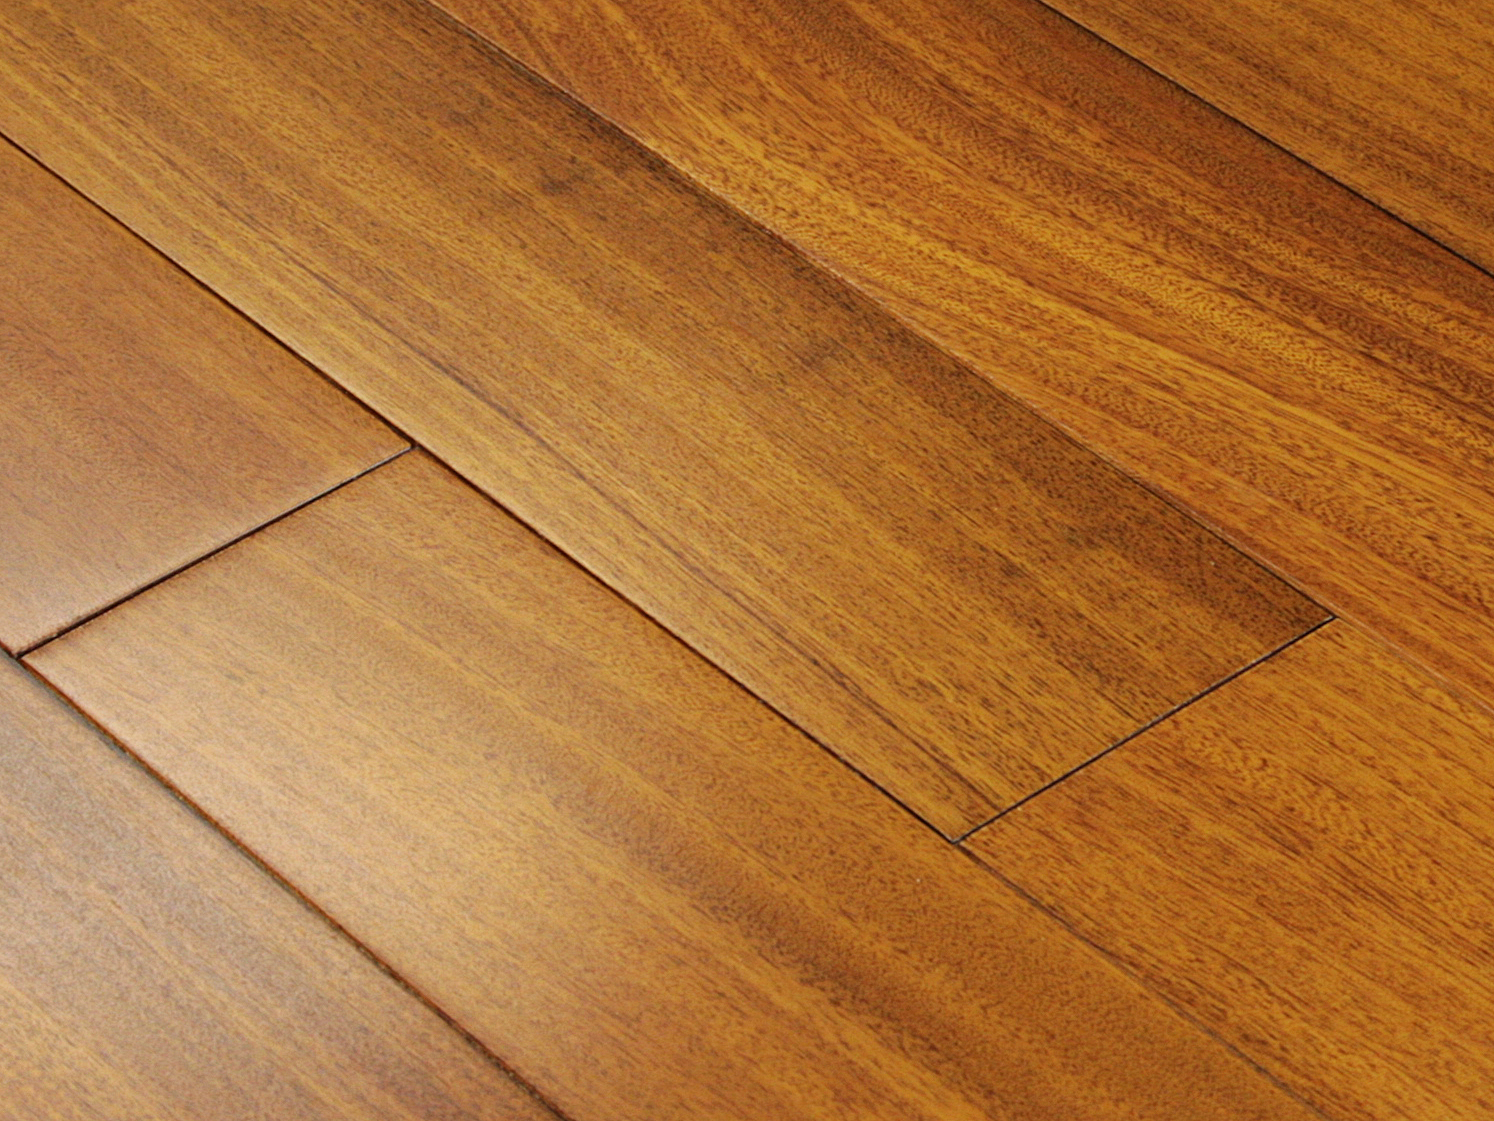 3 4 x5 xrl solid santos mahogany natural flooring floor 4 for Mahogany flooring